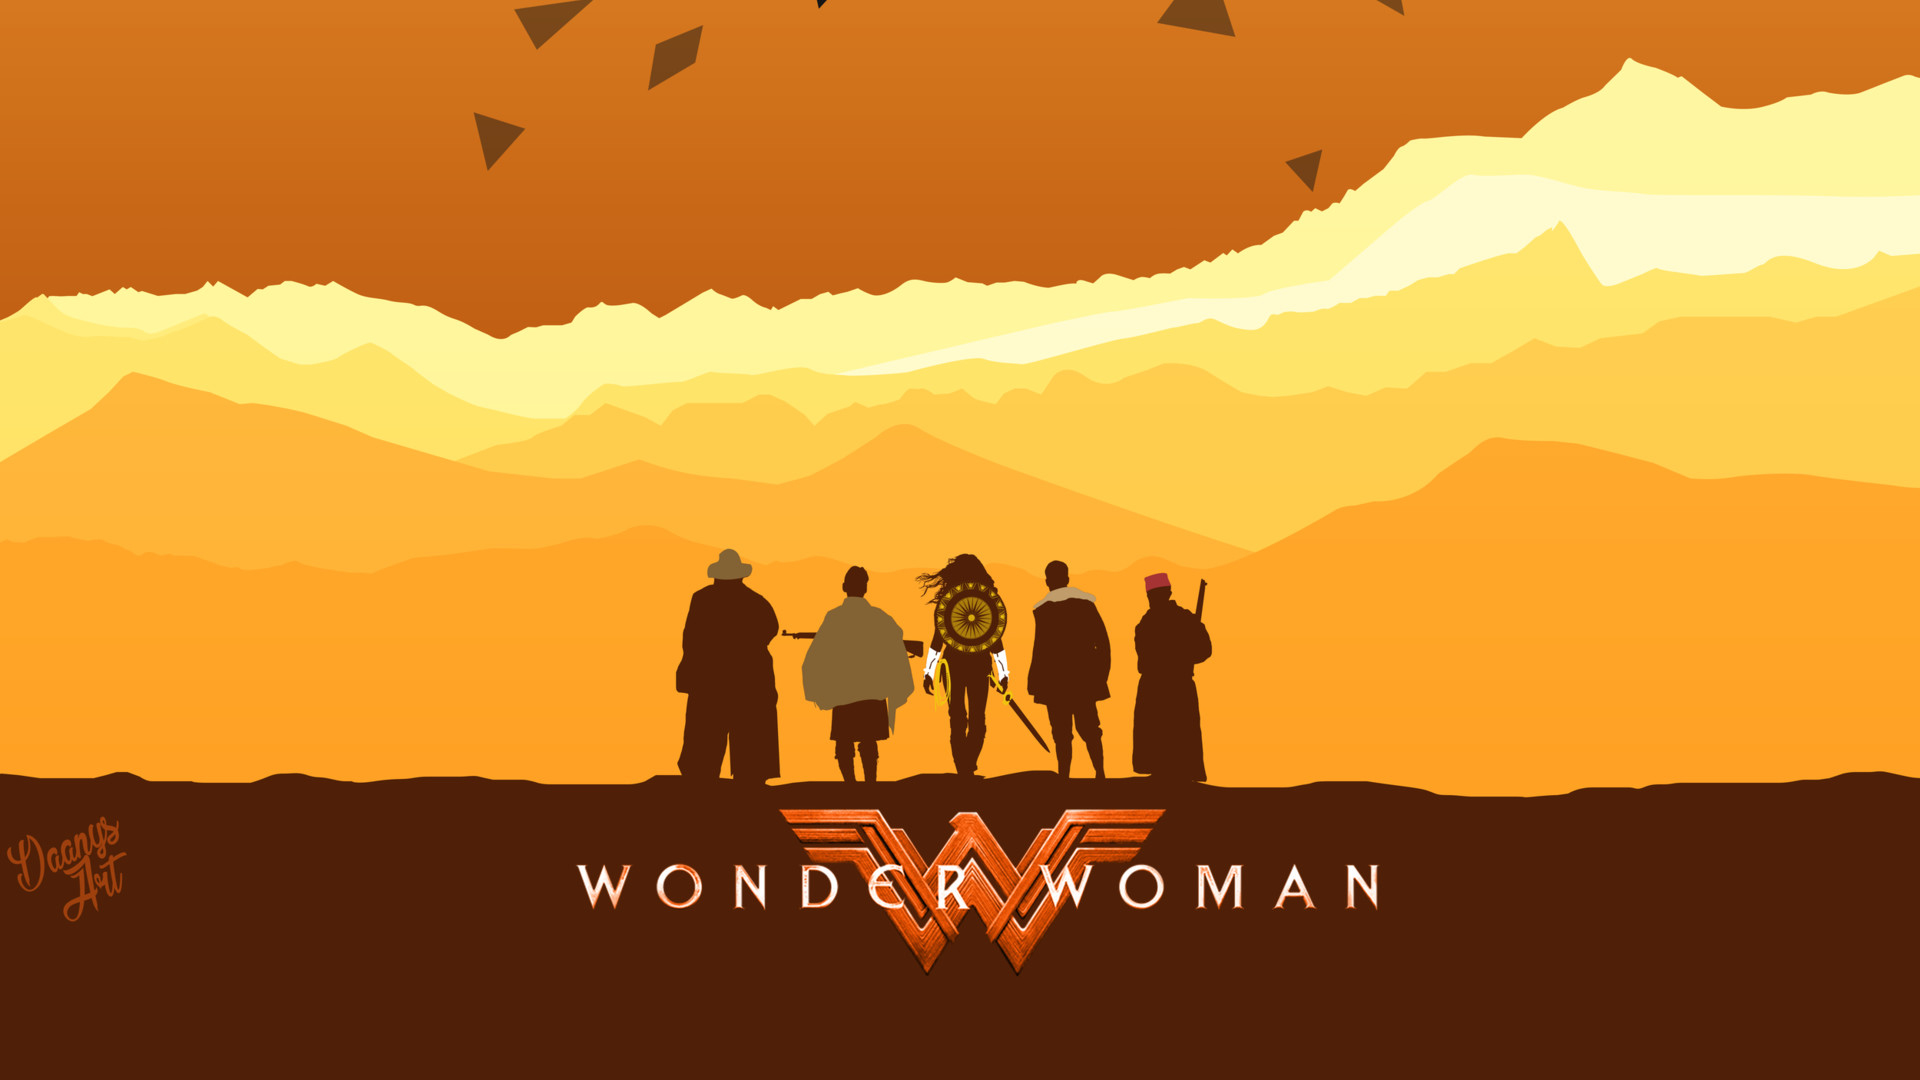 Wonder Woman Artwork798612750 - Wonder Woman Artwork - Wonder, Woman, Horizon, Artwork